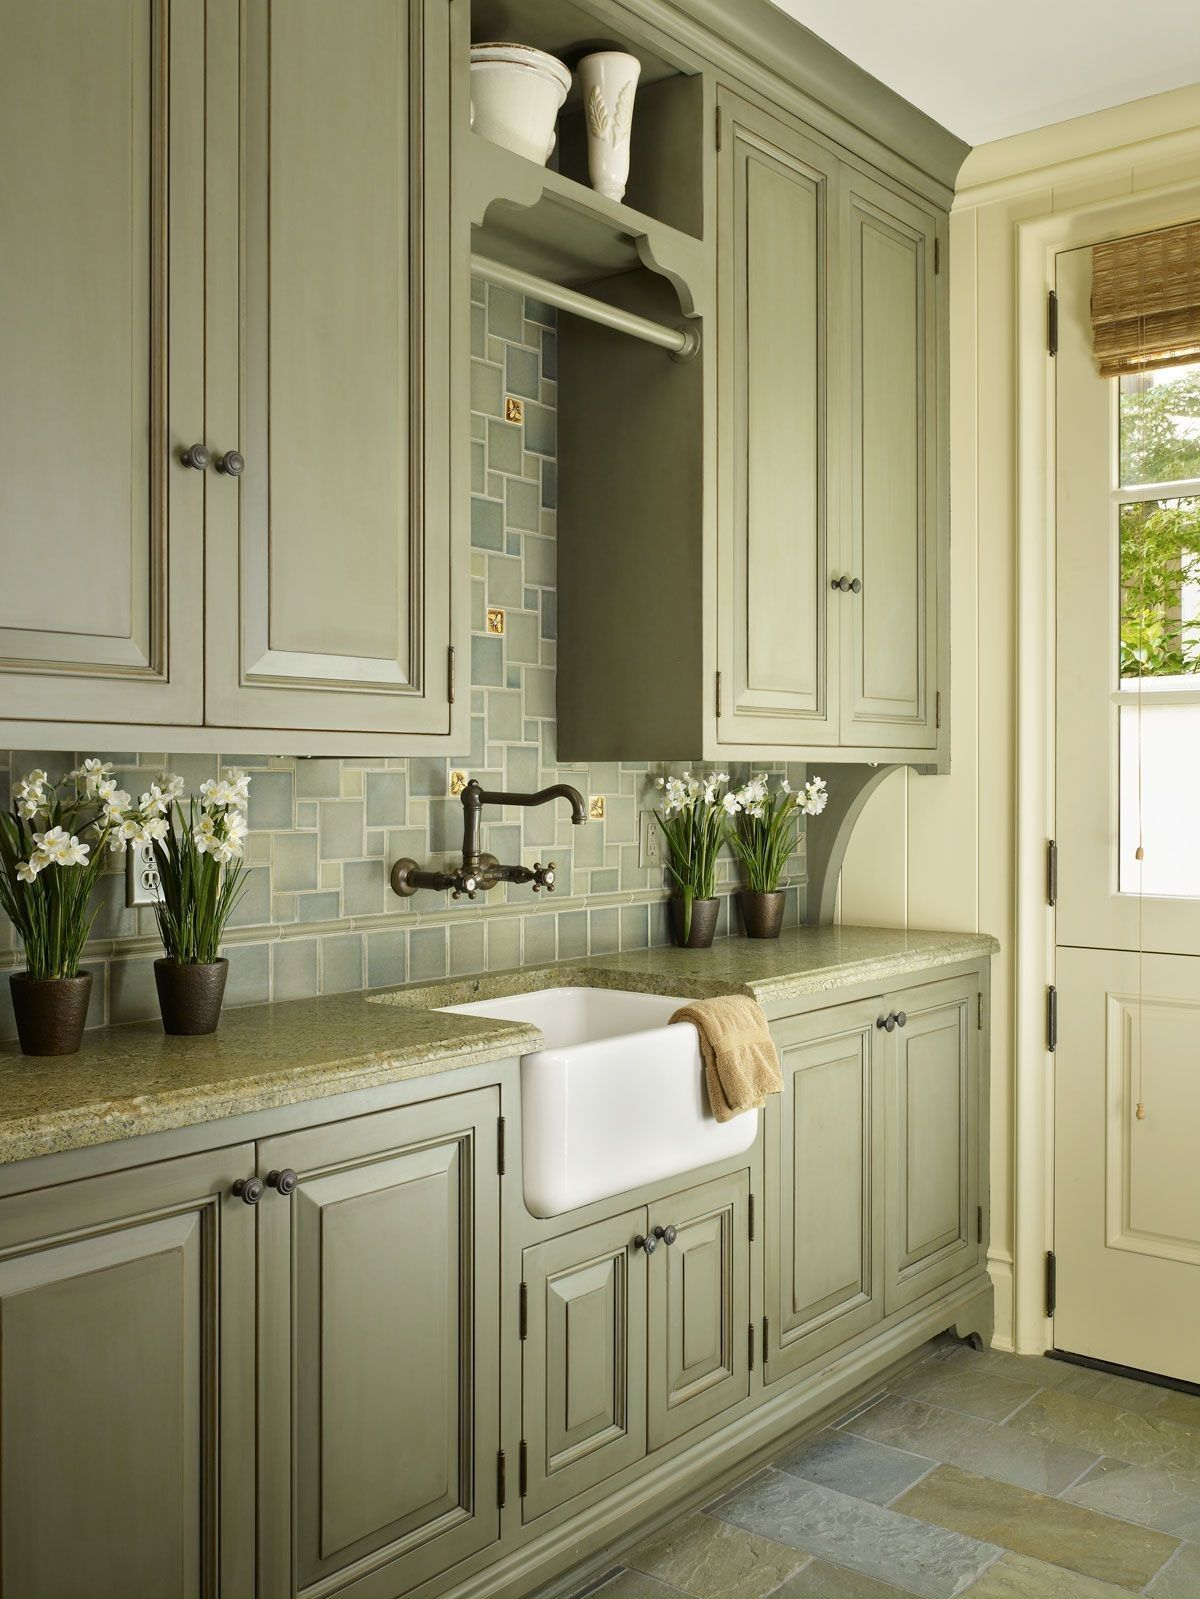 Most Popular Country kitchen ideas for small homes ...